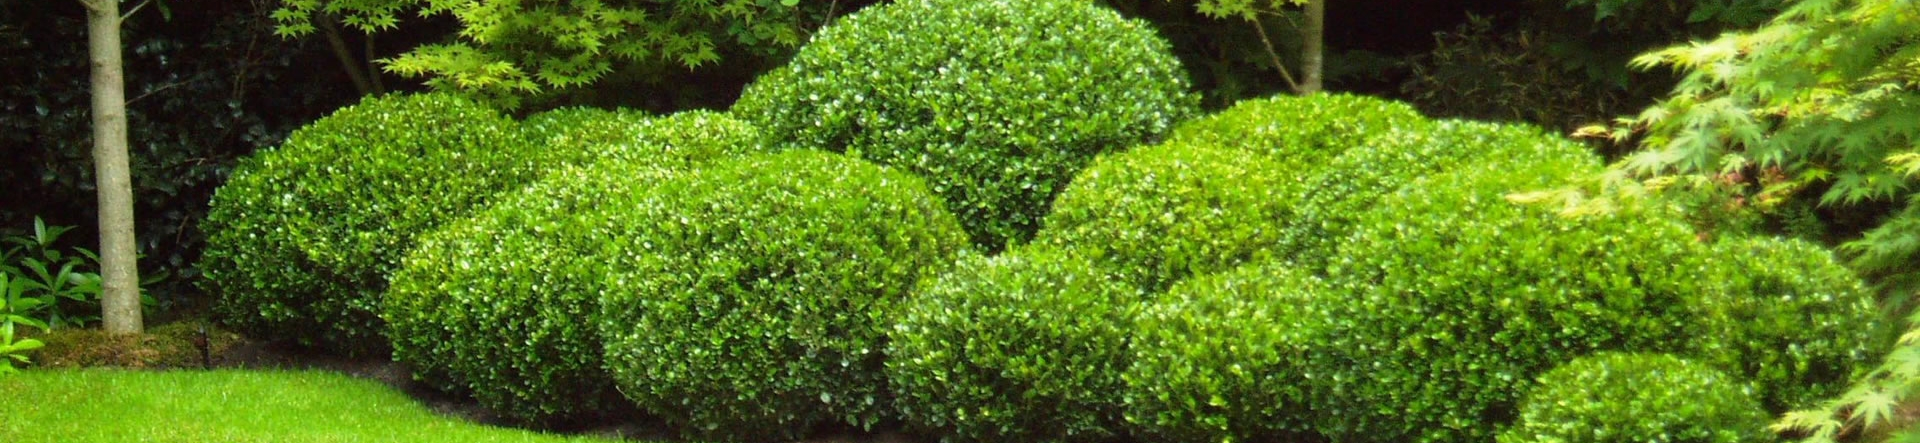 Topiary Cloud Hedging in Box